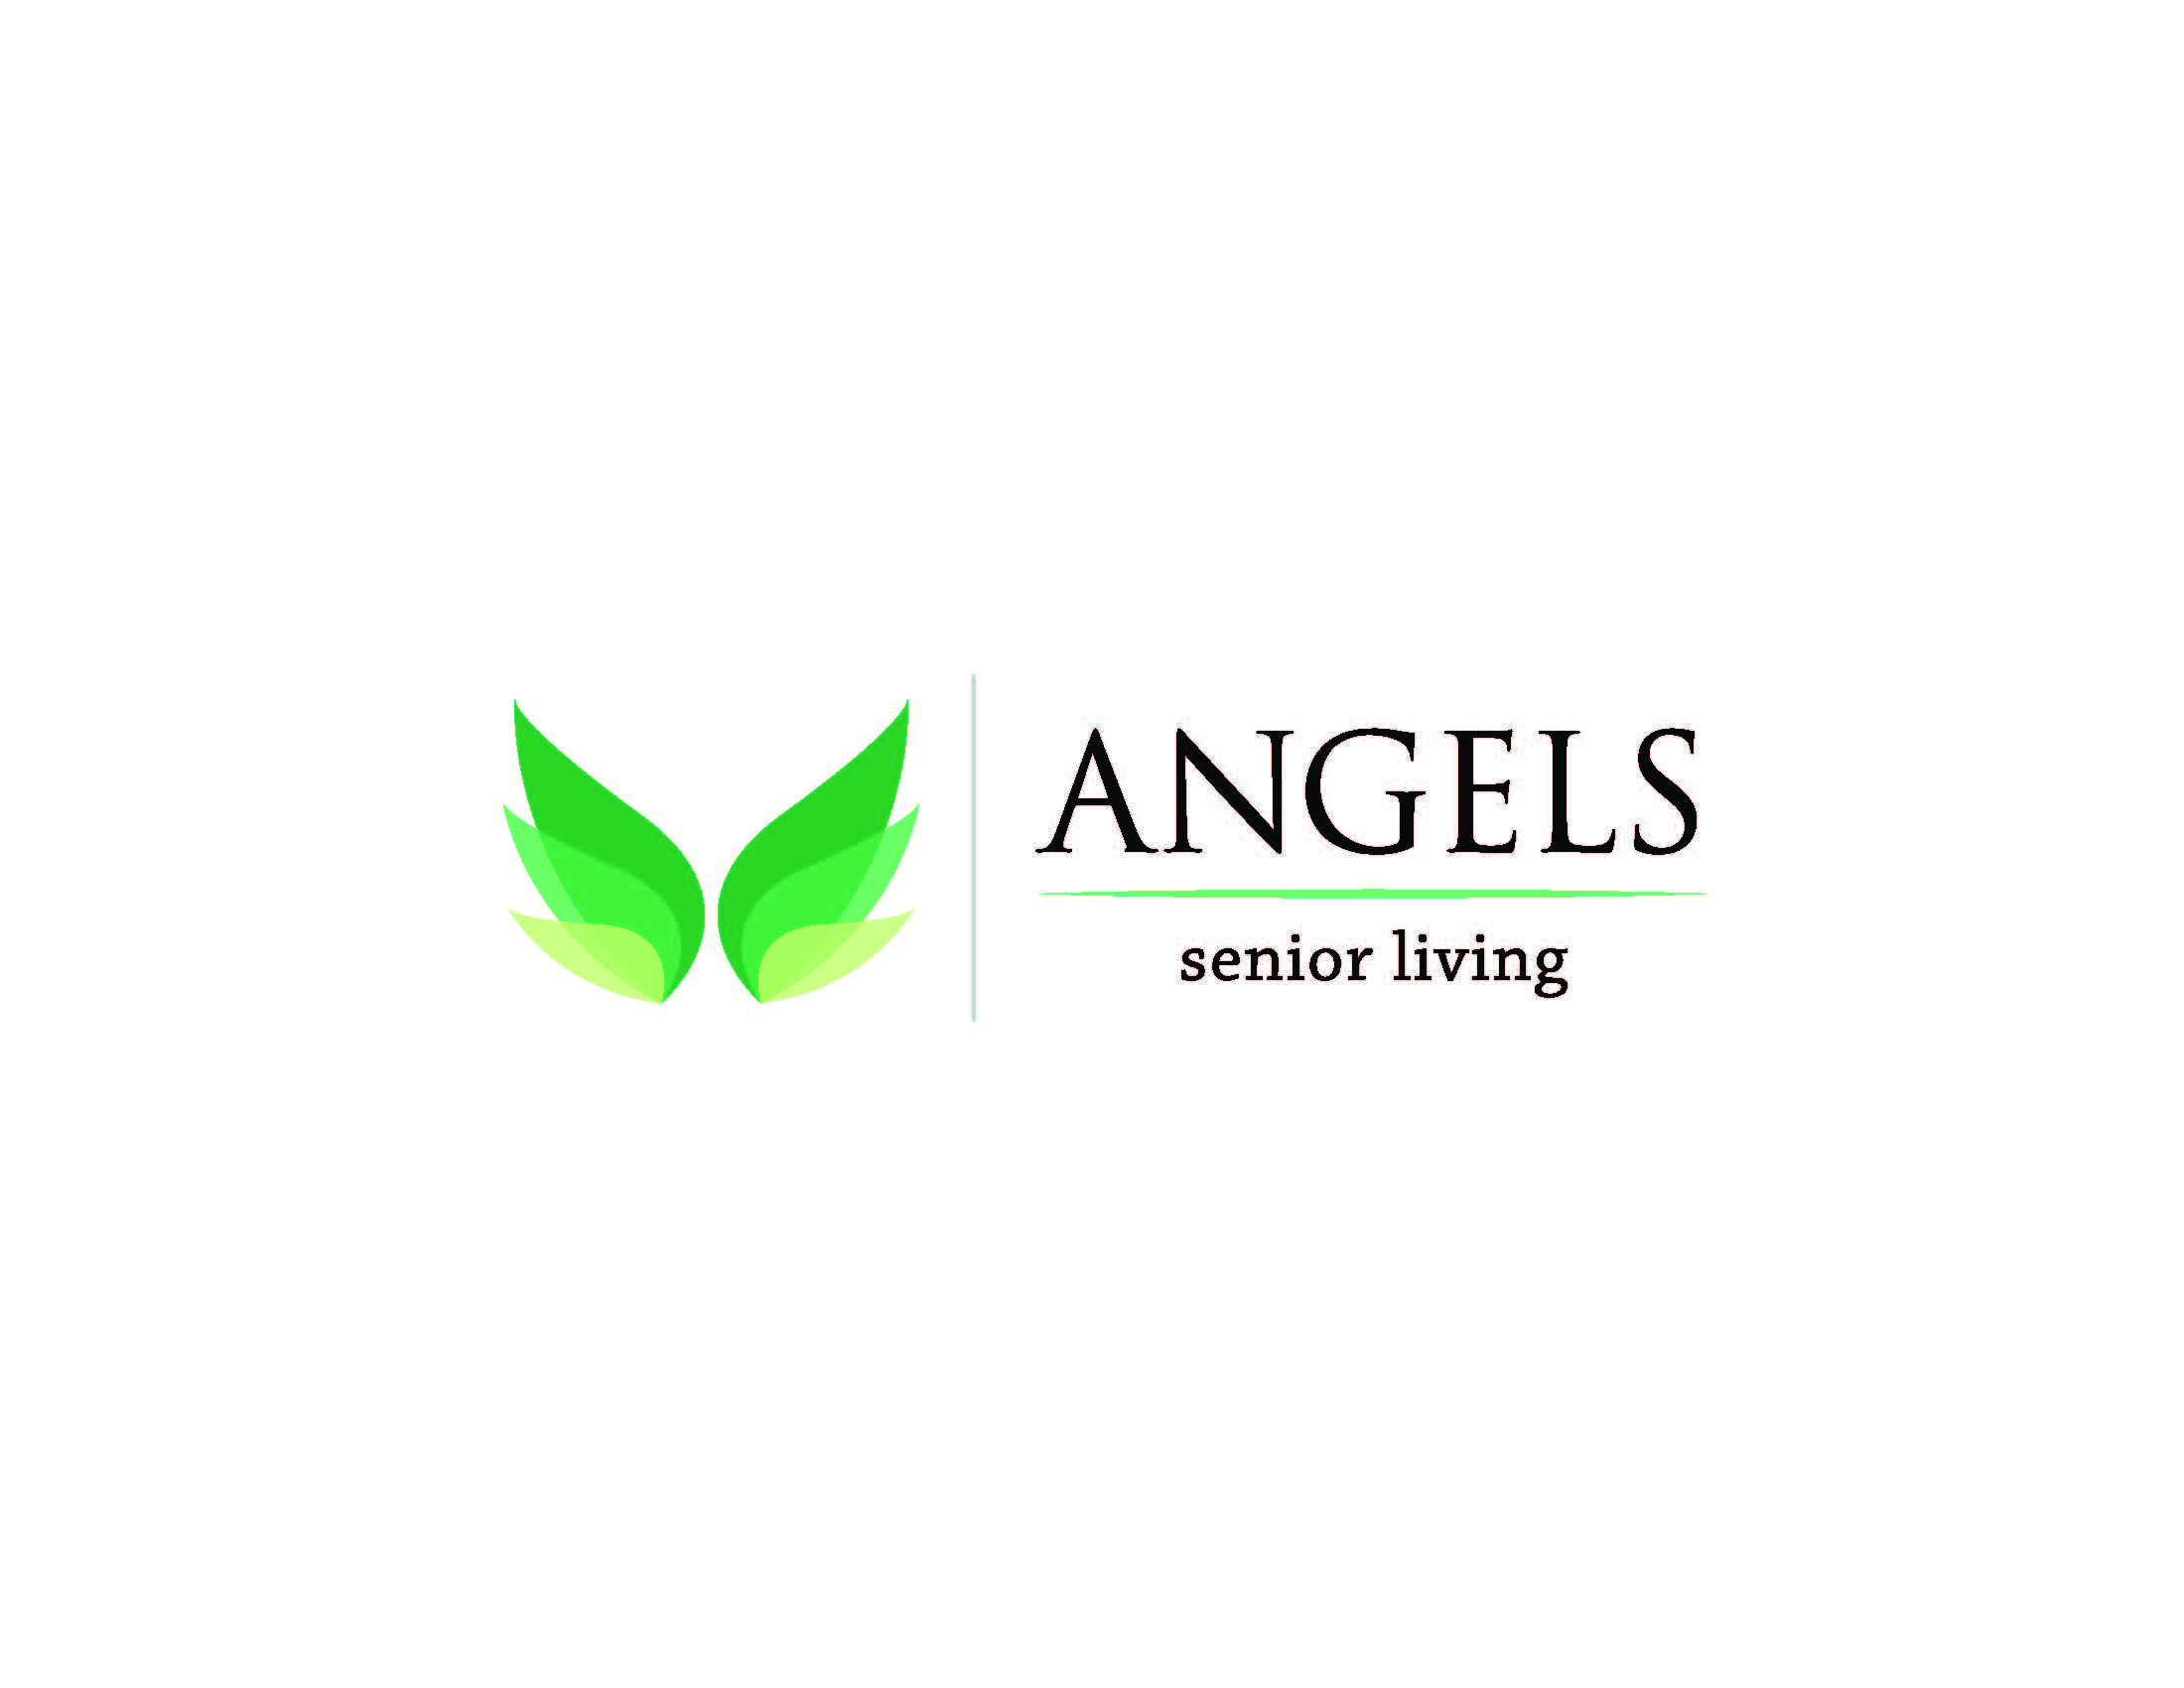 angels senior living